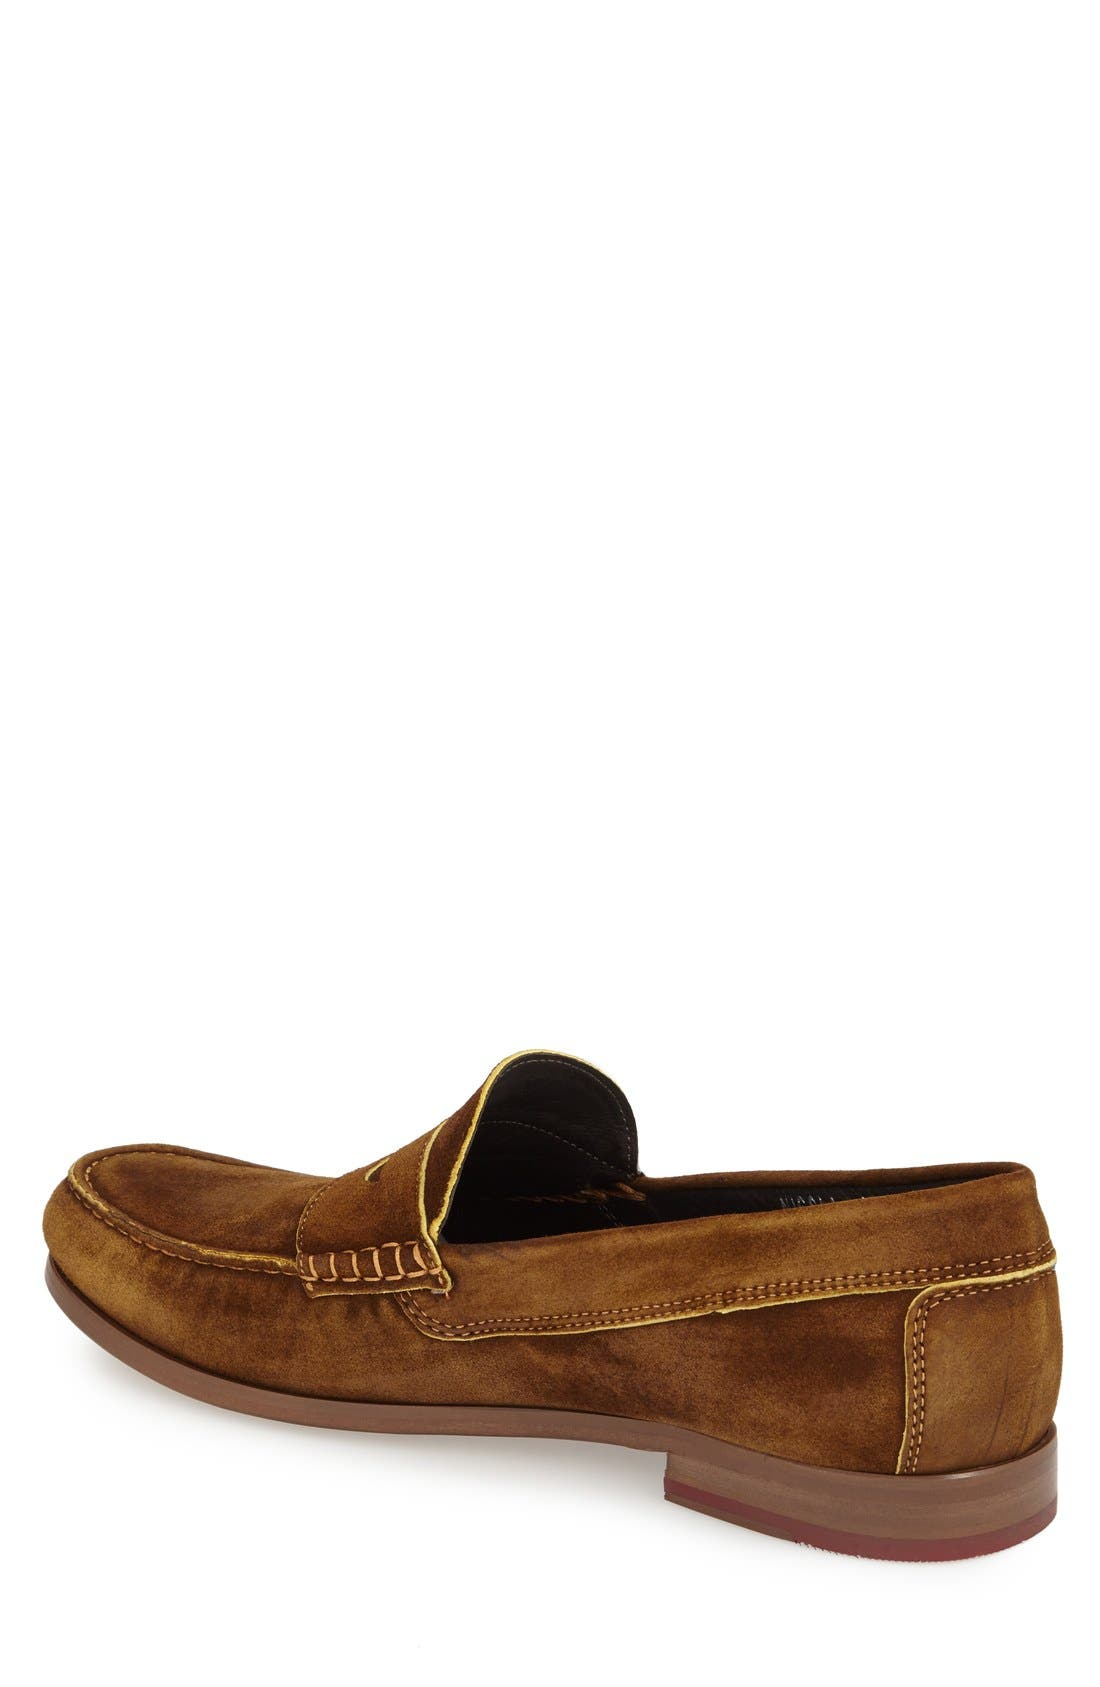 Nicola Penny Loafer,                             Alternate thumbnail 16, color,